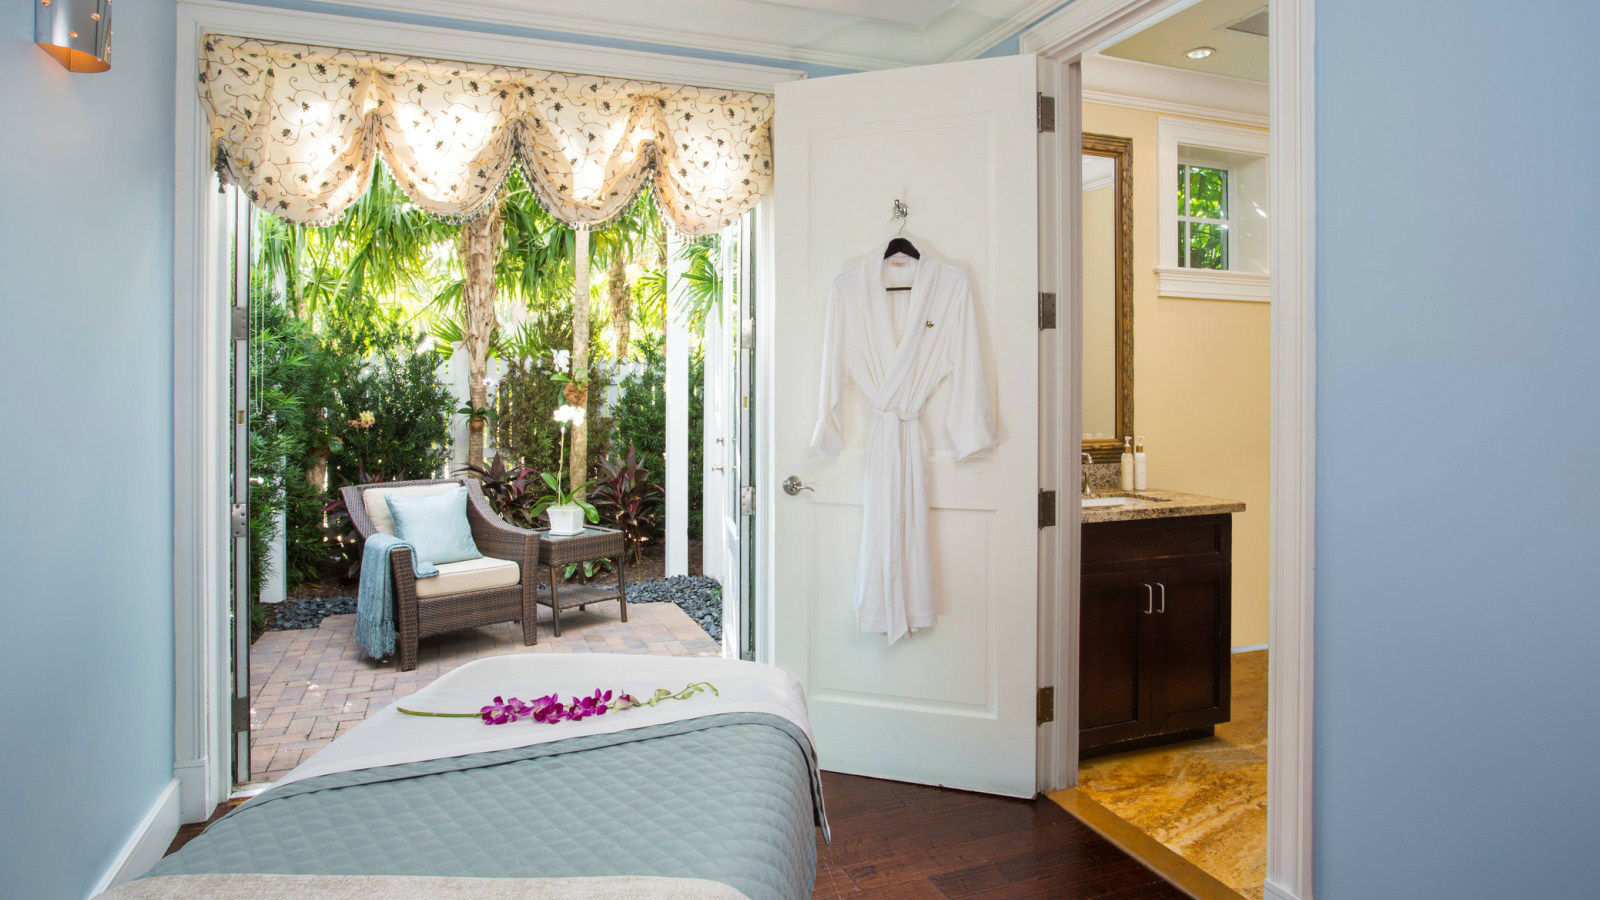 Key west spa the spa at sunset key sunset key cottages resort - Serene traditional cottage in natural theme ...